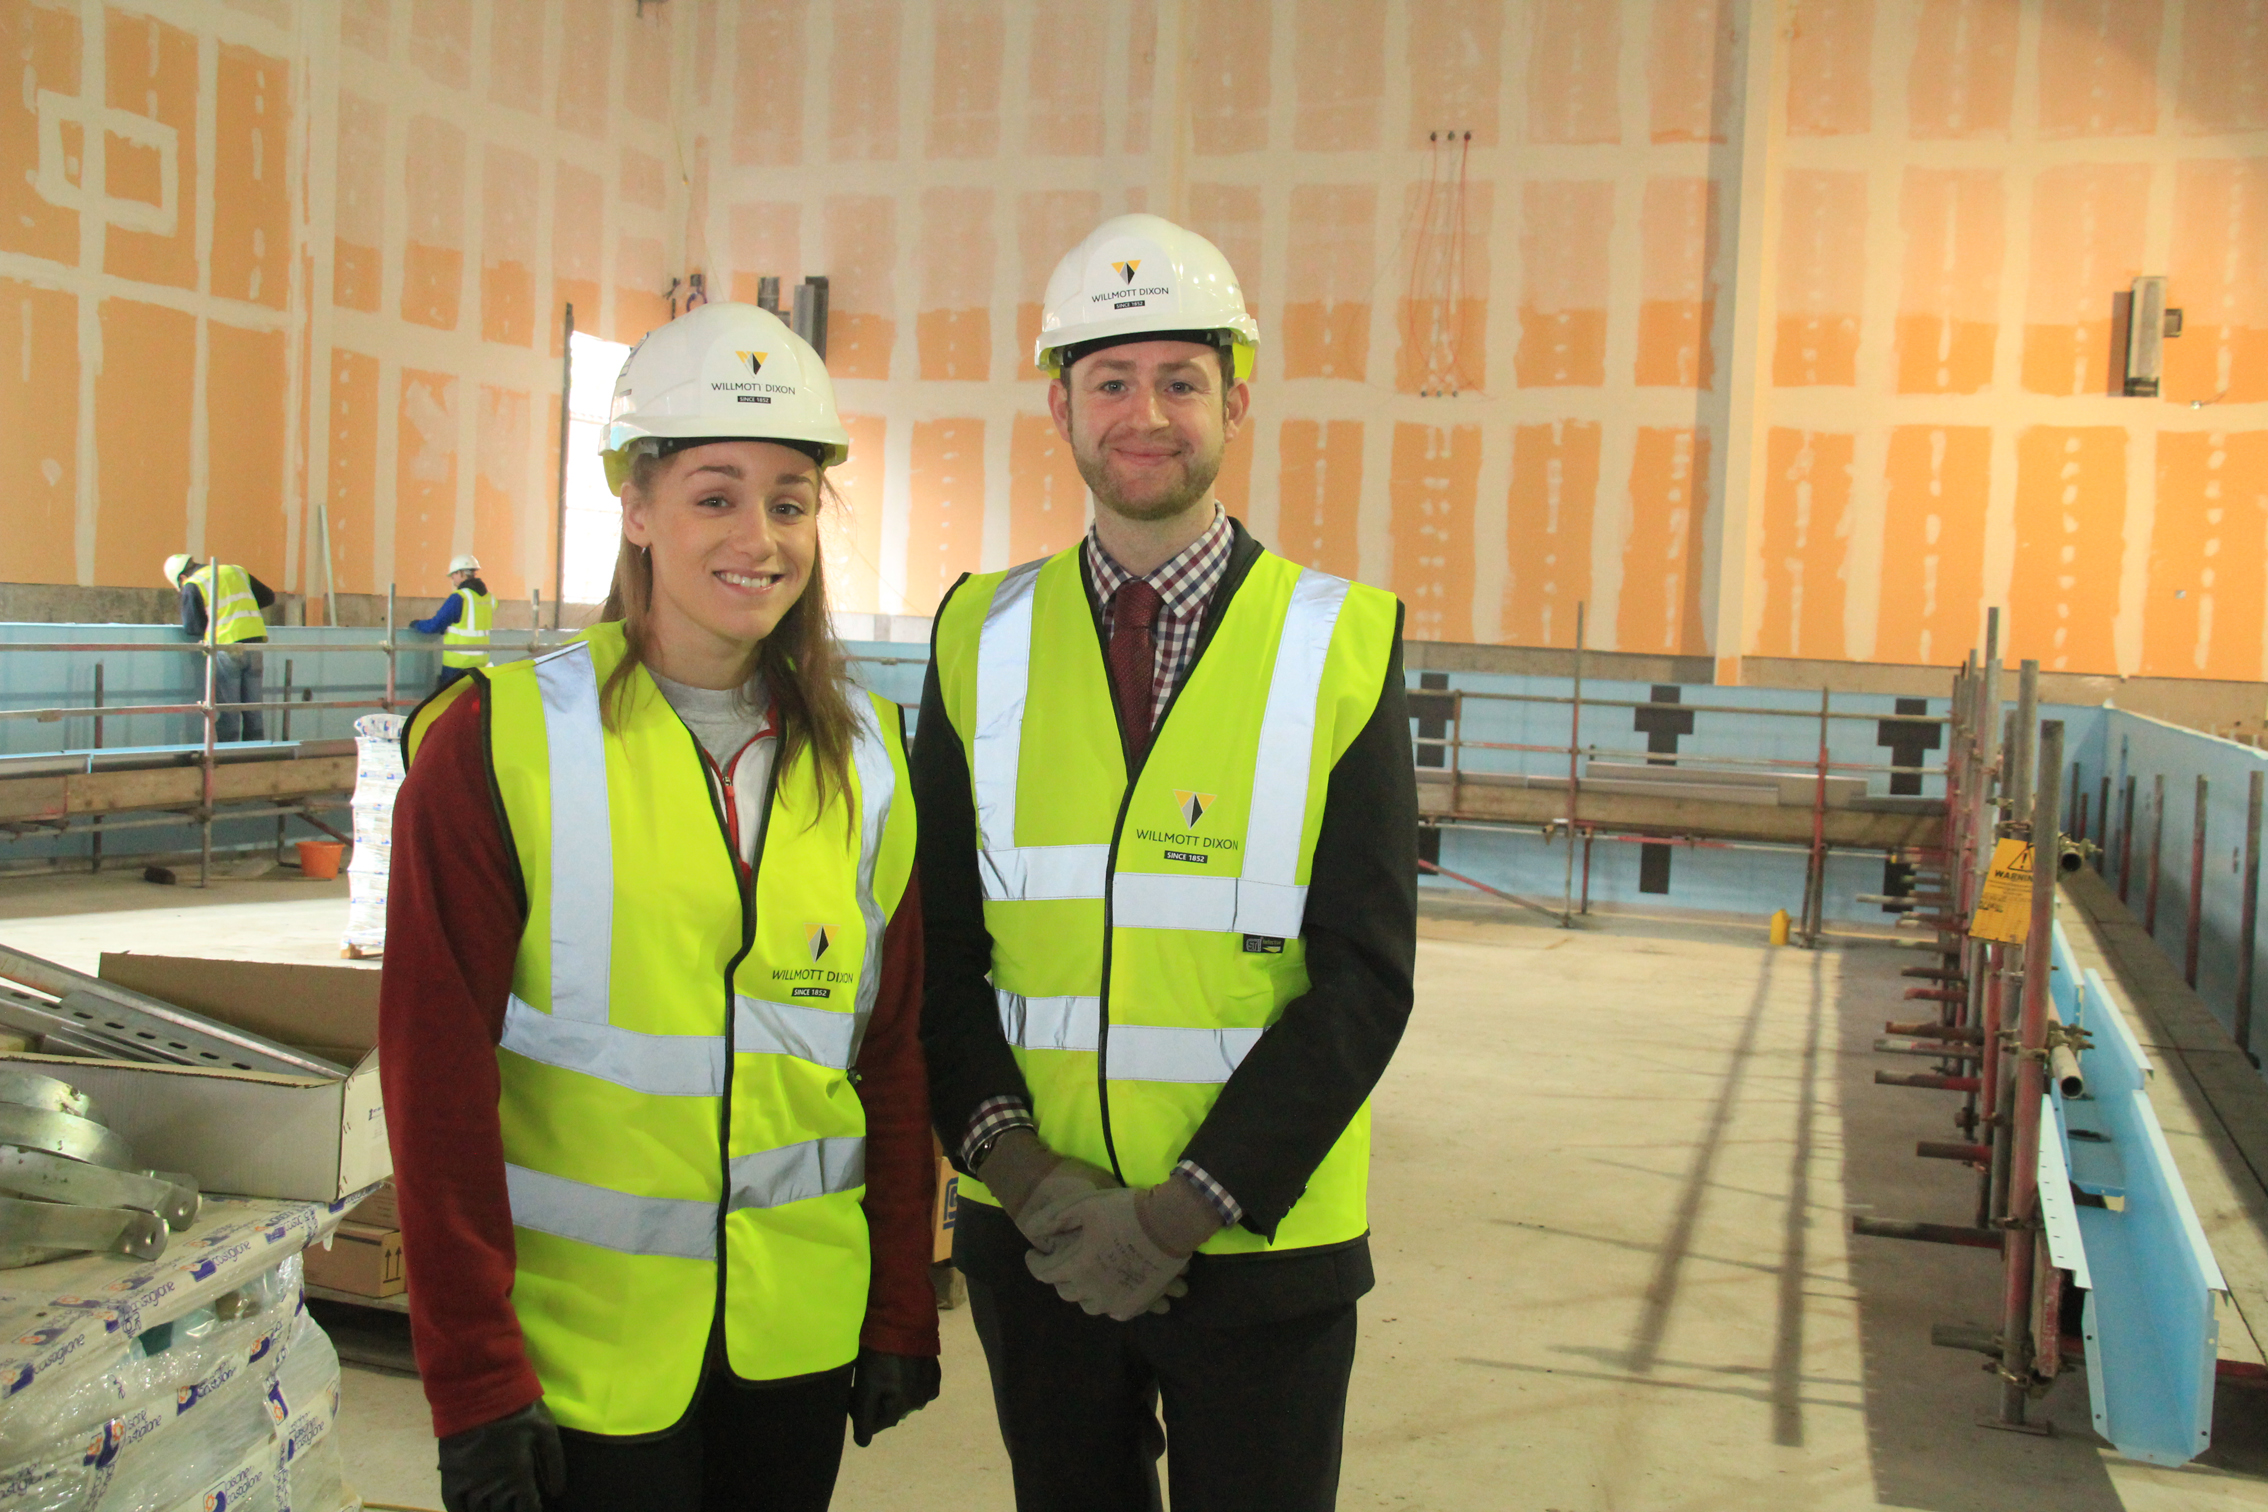 Jim McMahon, Oldham Council Leader and Jessica Fullalove, GB swimmer and Royton resident (pictured front), are pictured inside the new Royton Leisure Centre.